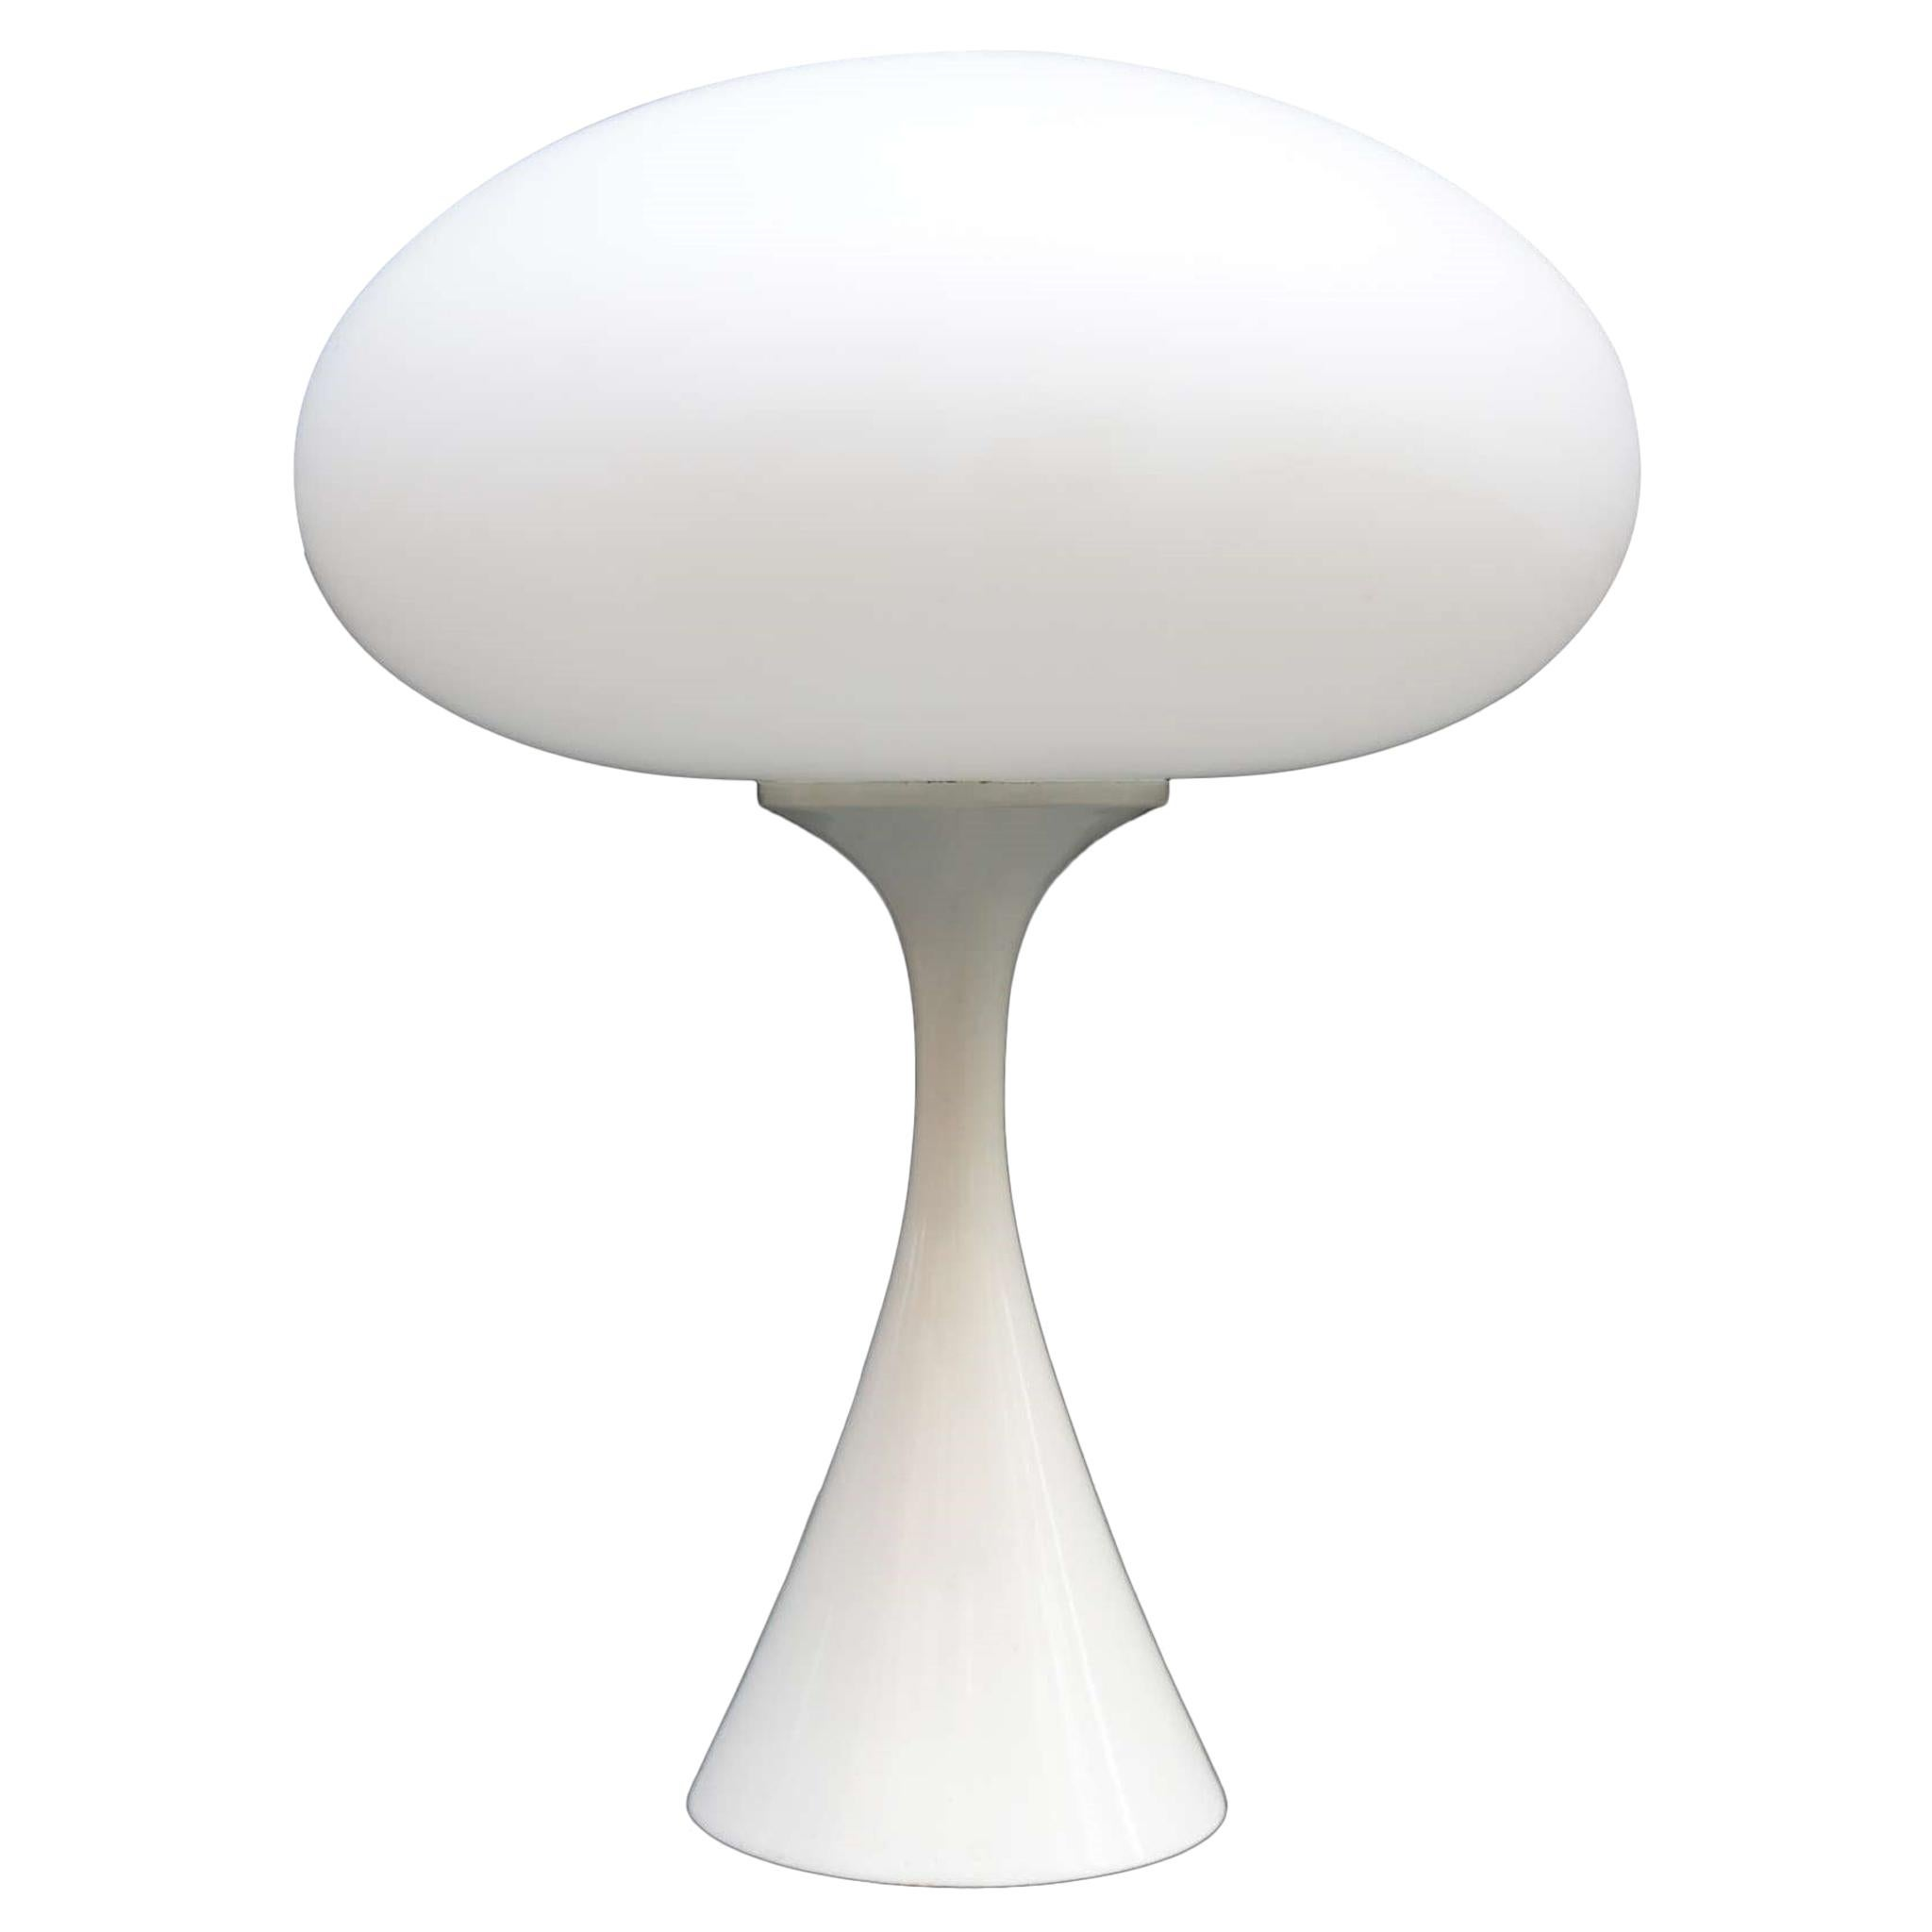 Modernist Single Table Lamp by Bill Curry